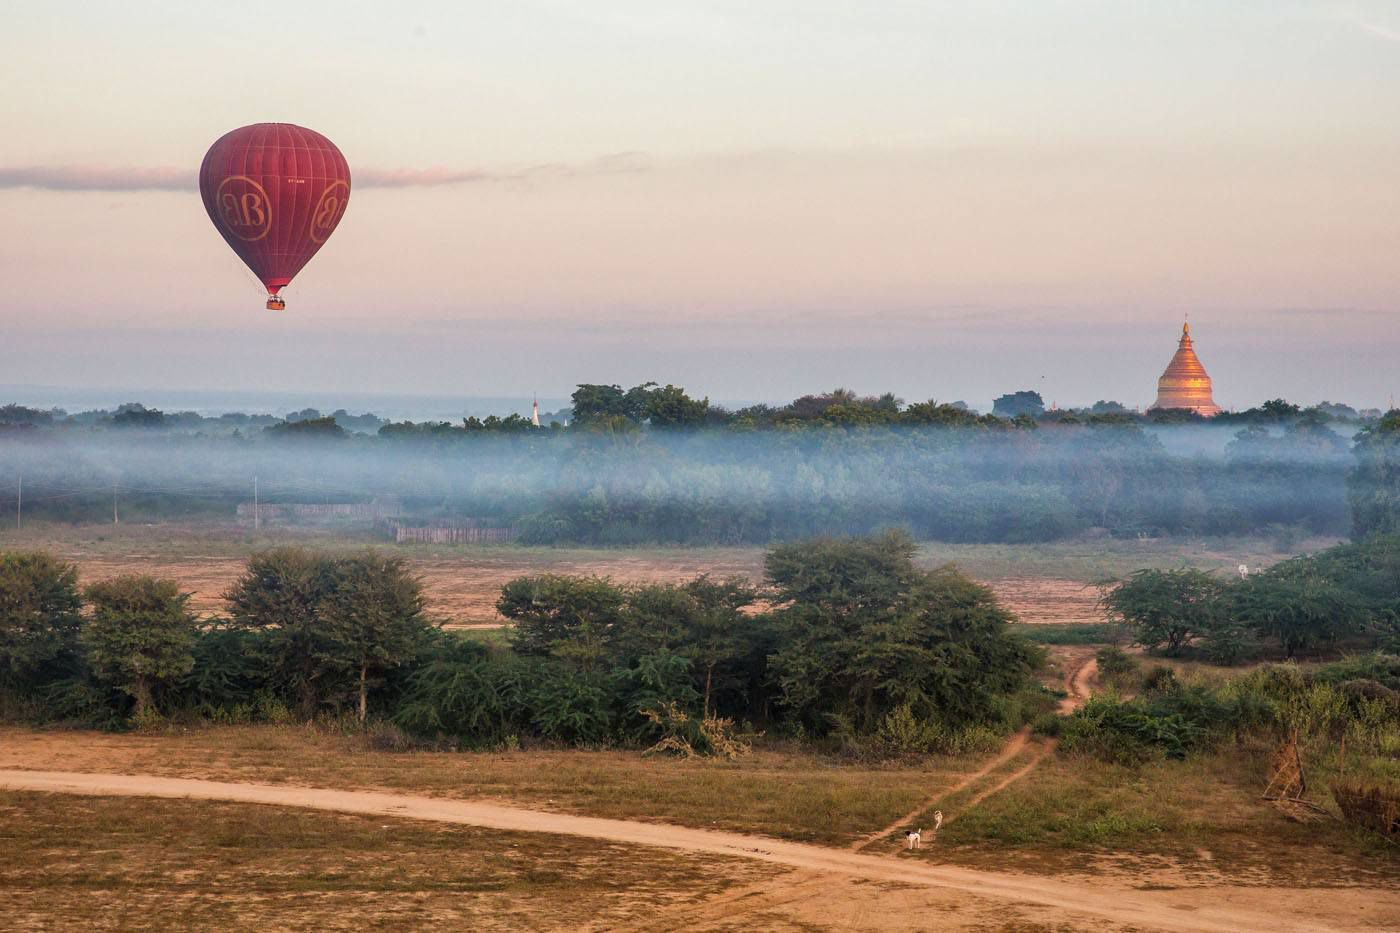 Lone Balloon in Bagan